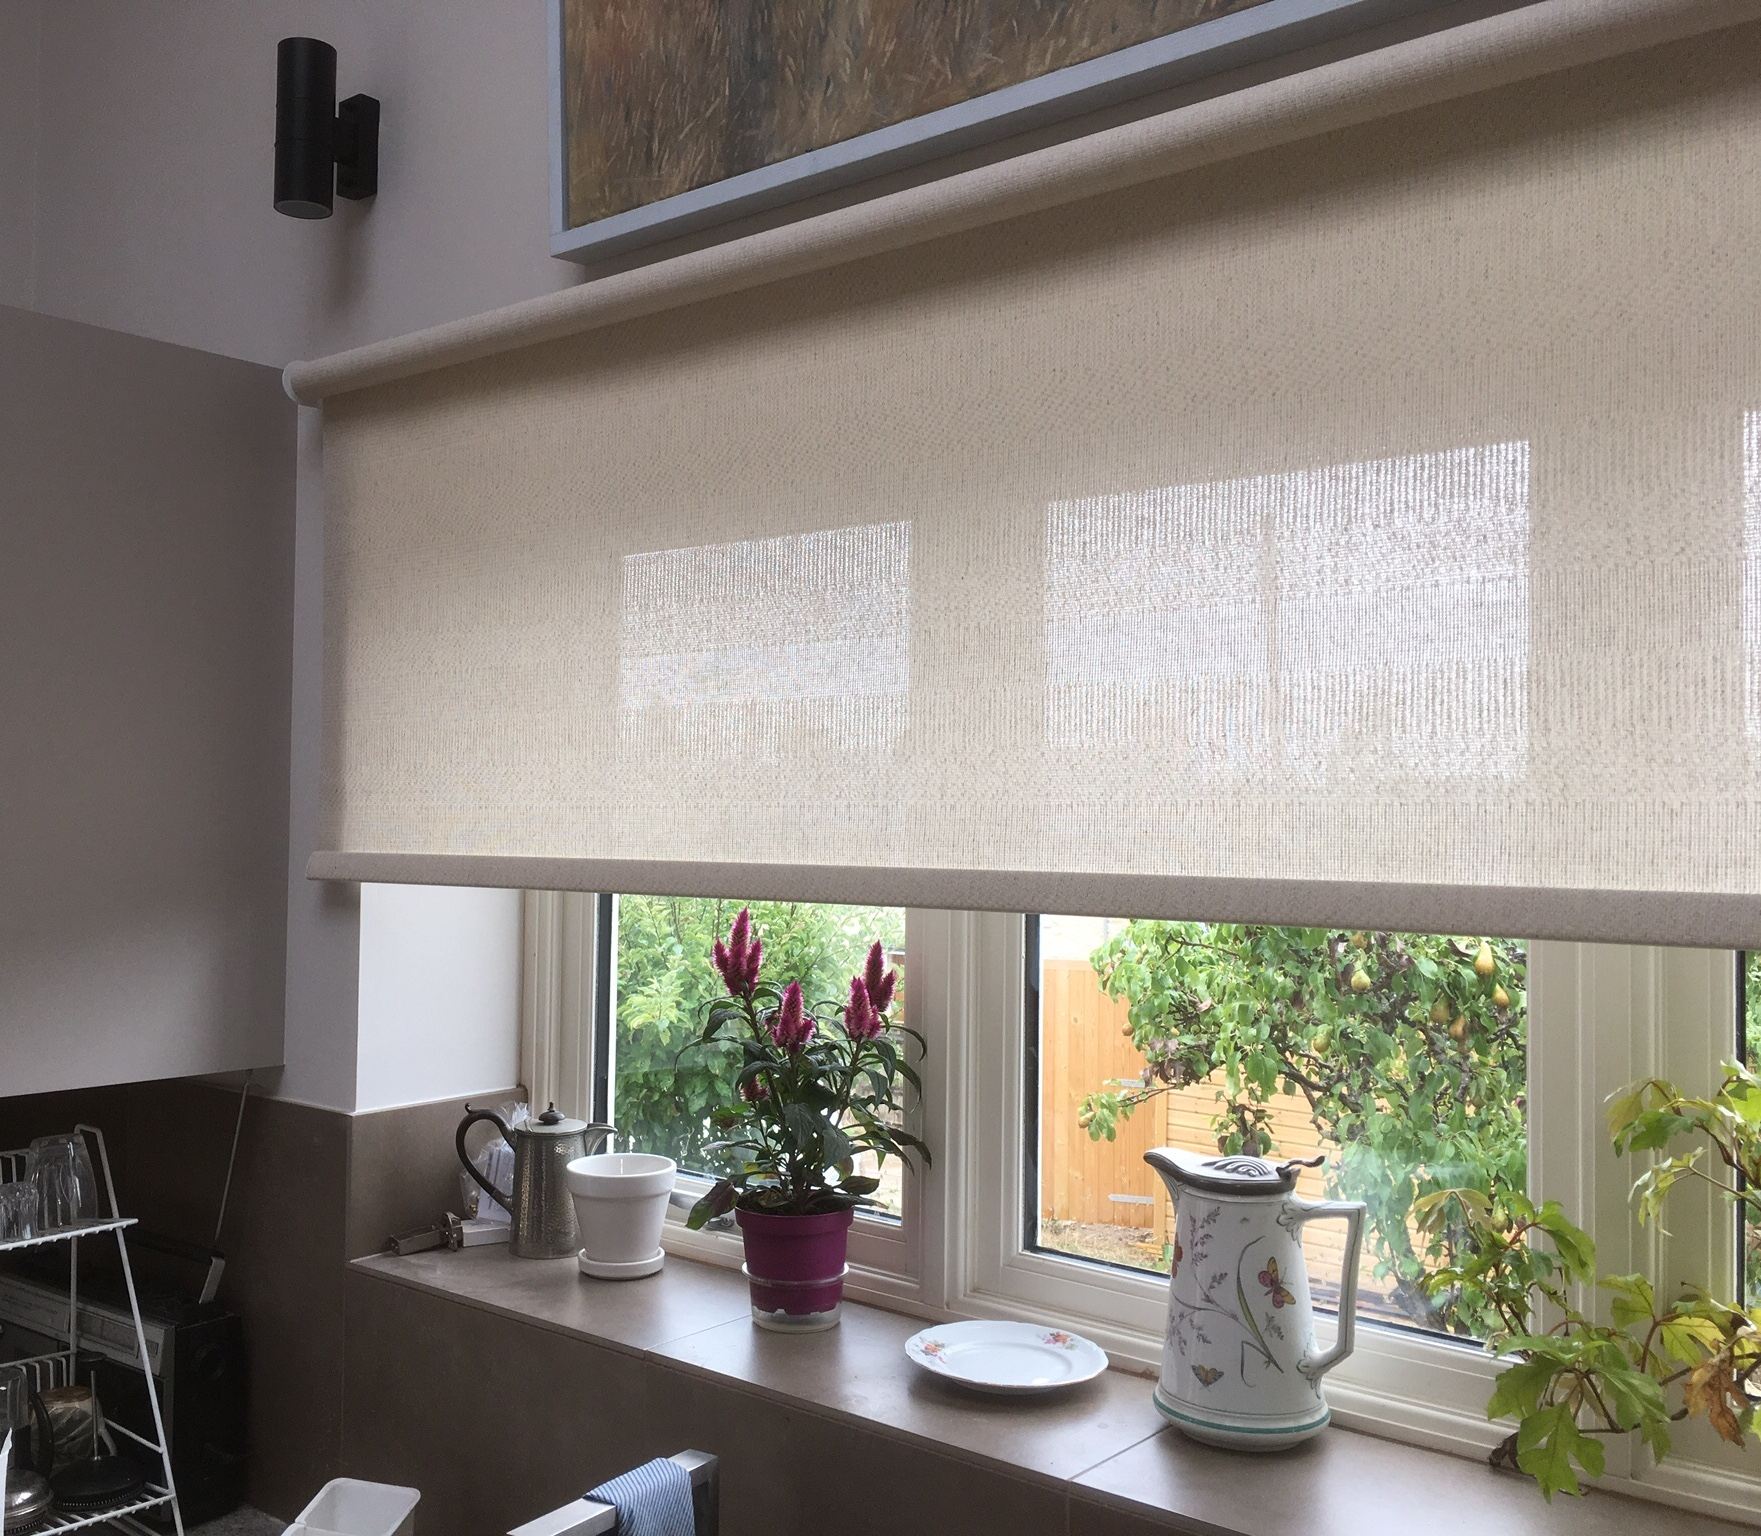 Sheer Roller Blind for Privacy and Light